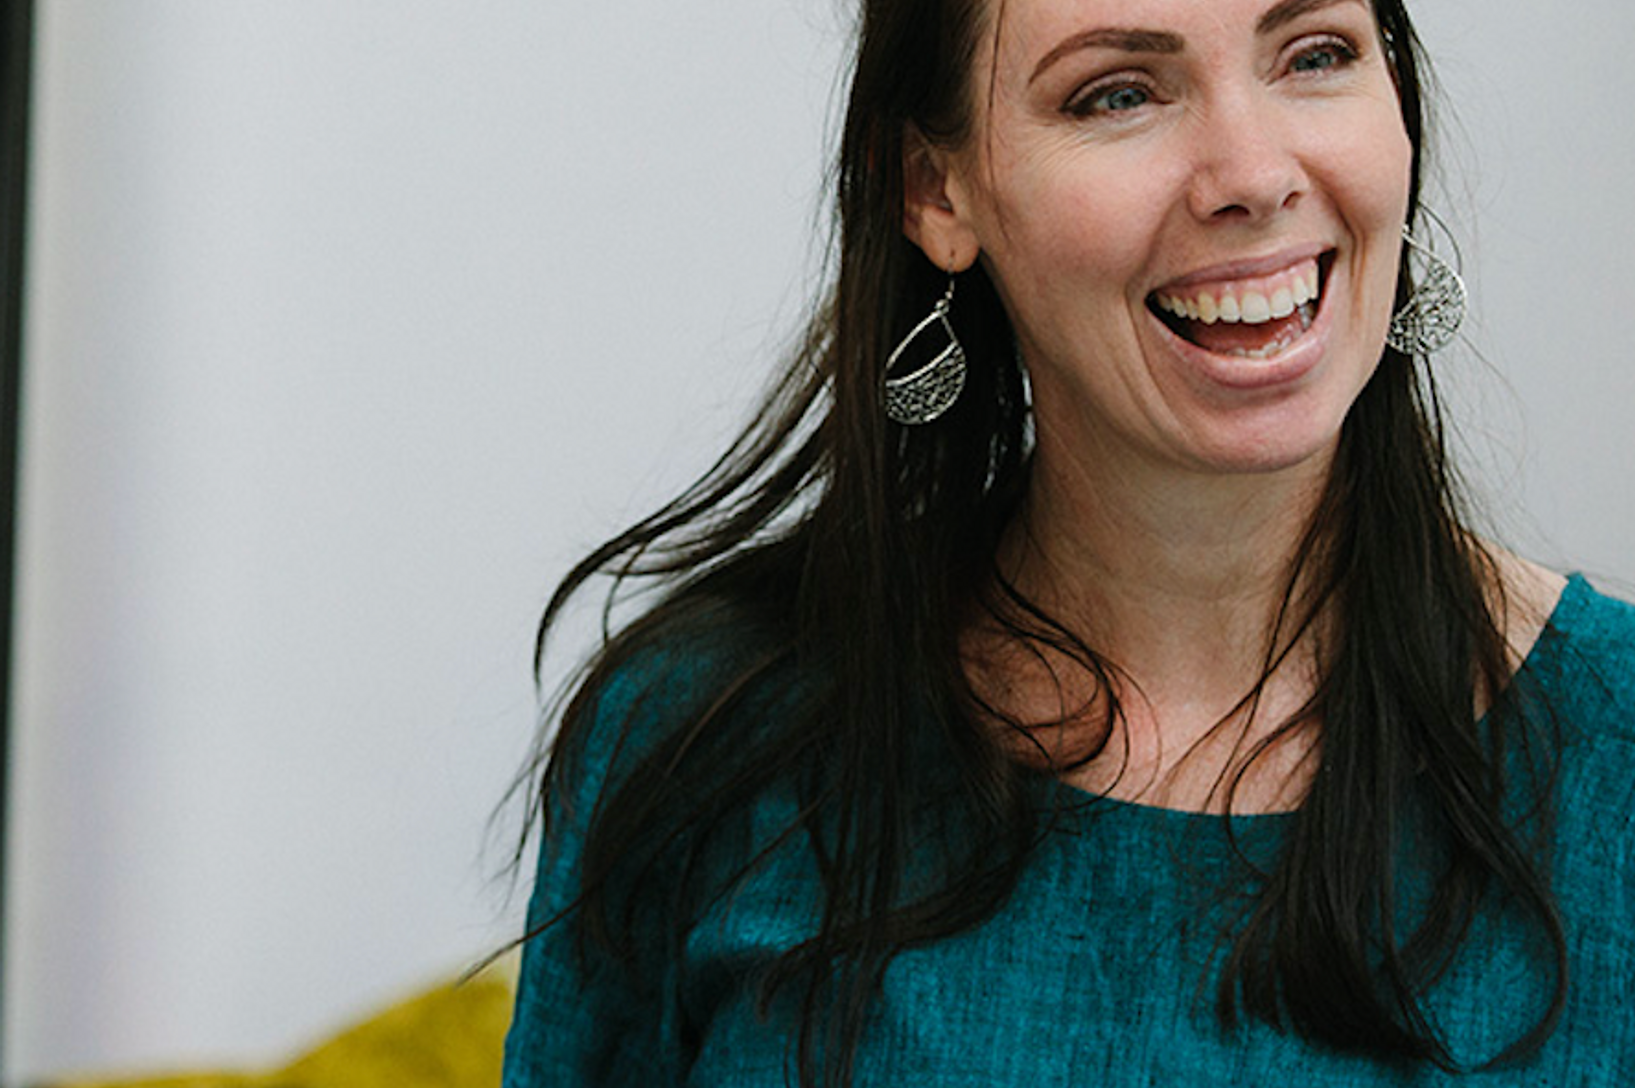 Ana Wilkinson-Gee is empowering women with her company Holi Boli, and we'd love for you to meet her.